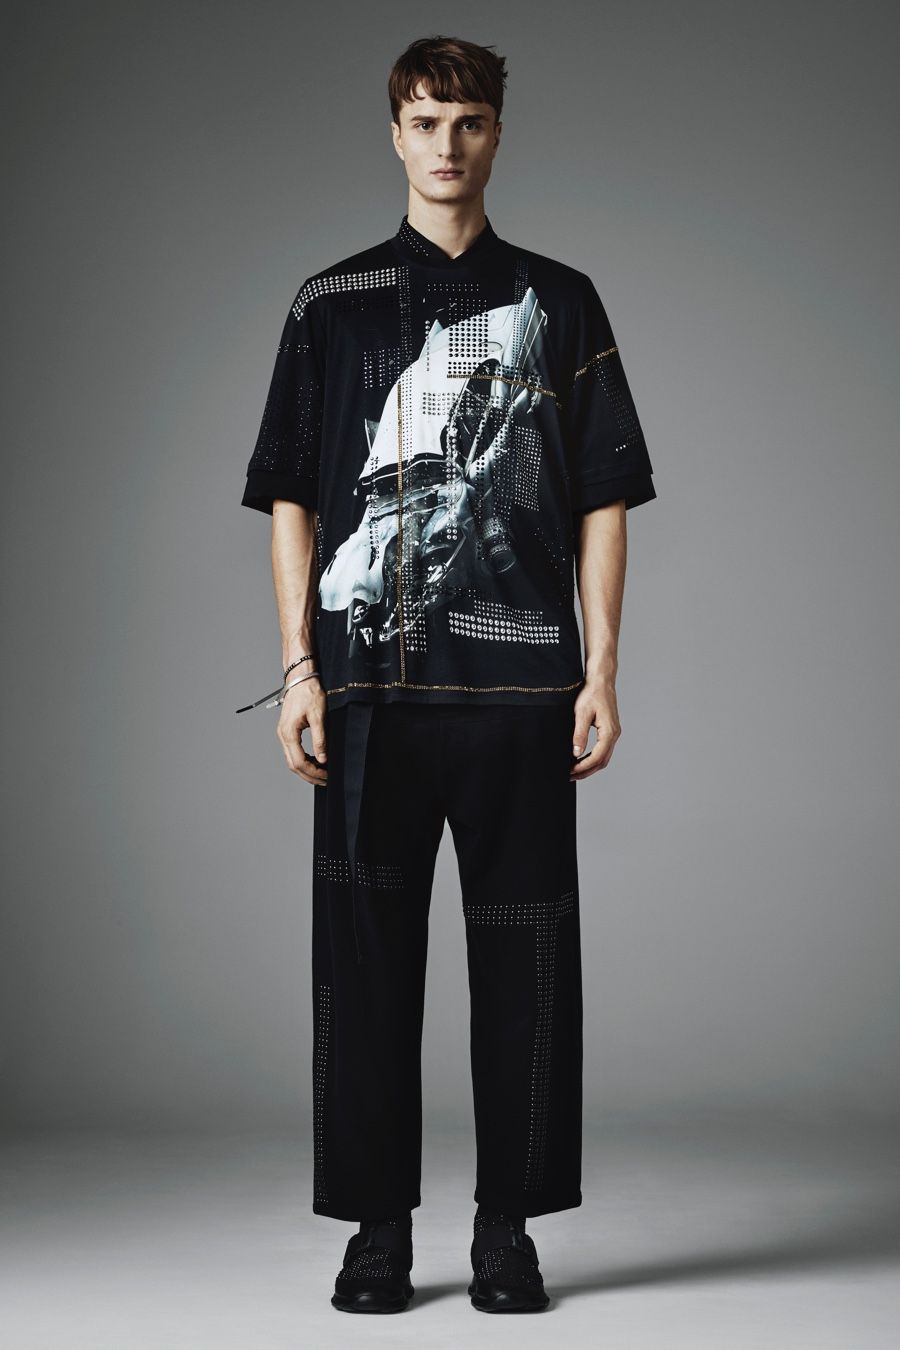 Christopher Kane Inspired by City Streets & Cars for Fall